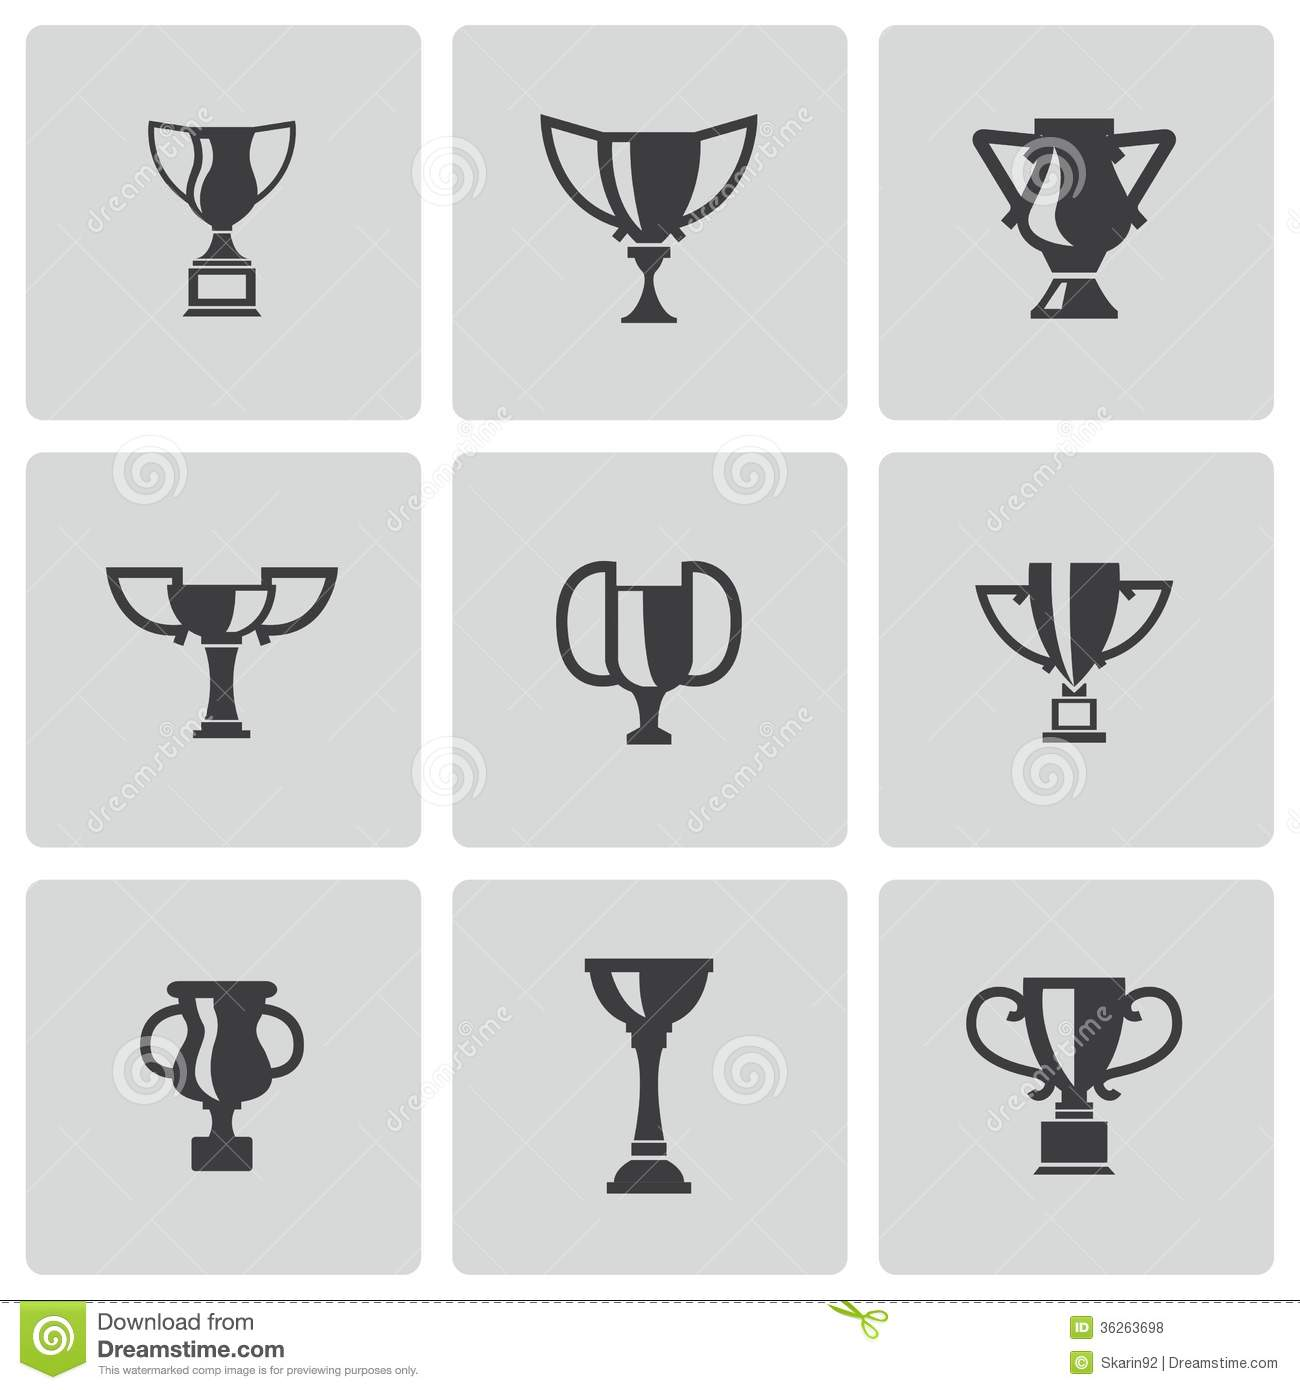 Trophy Icons Vector Black and White